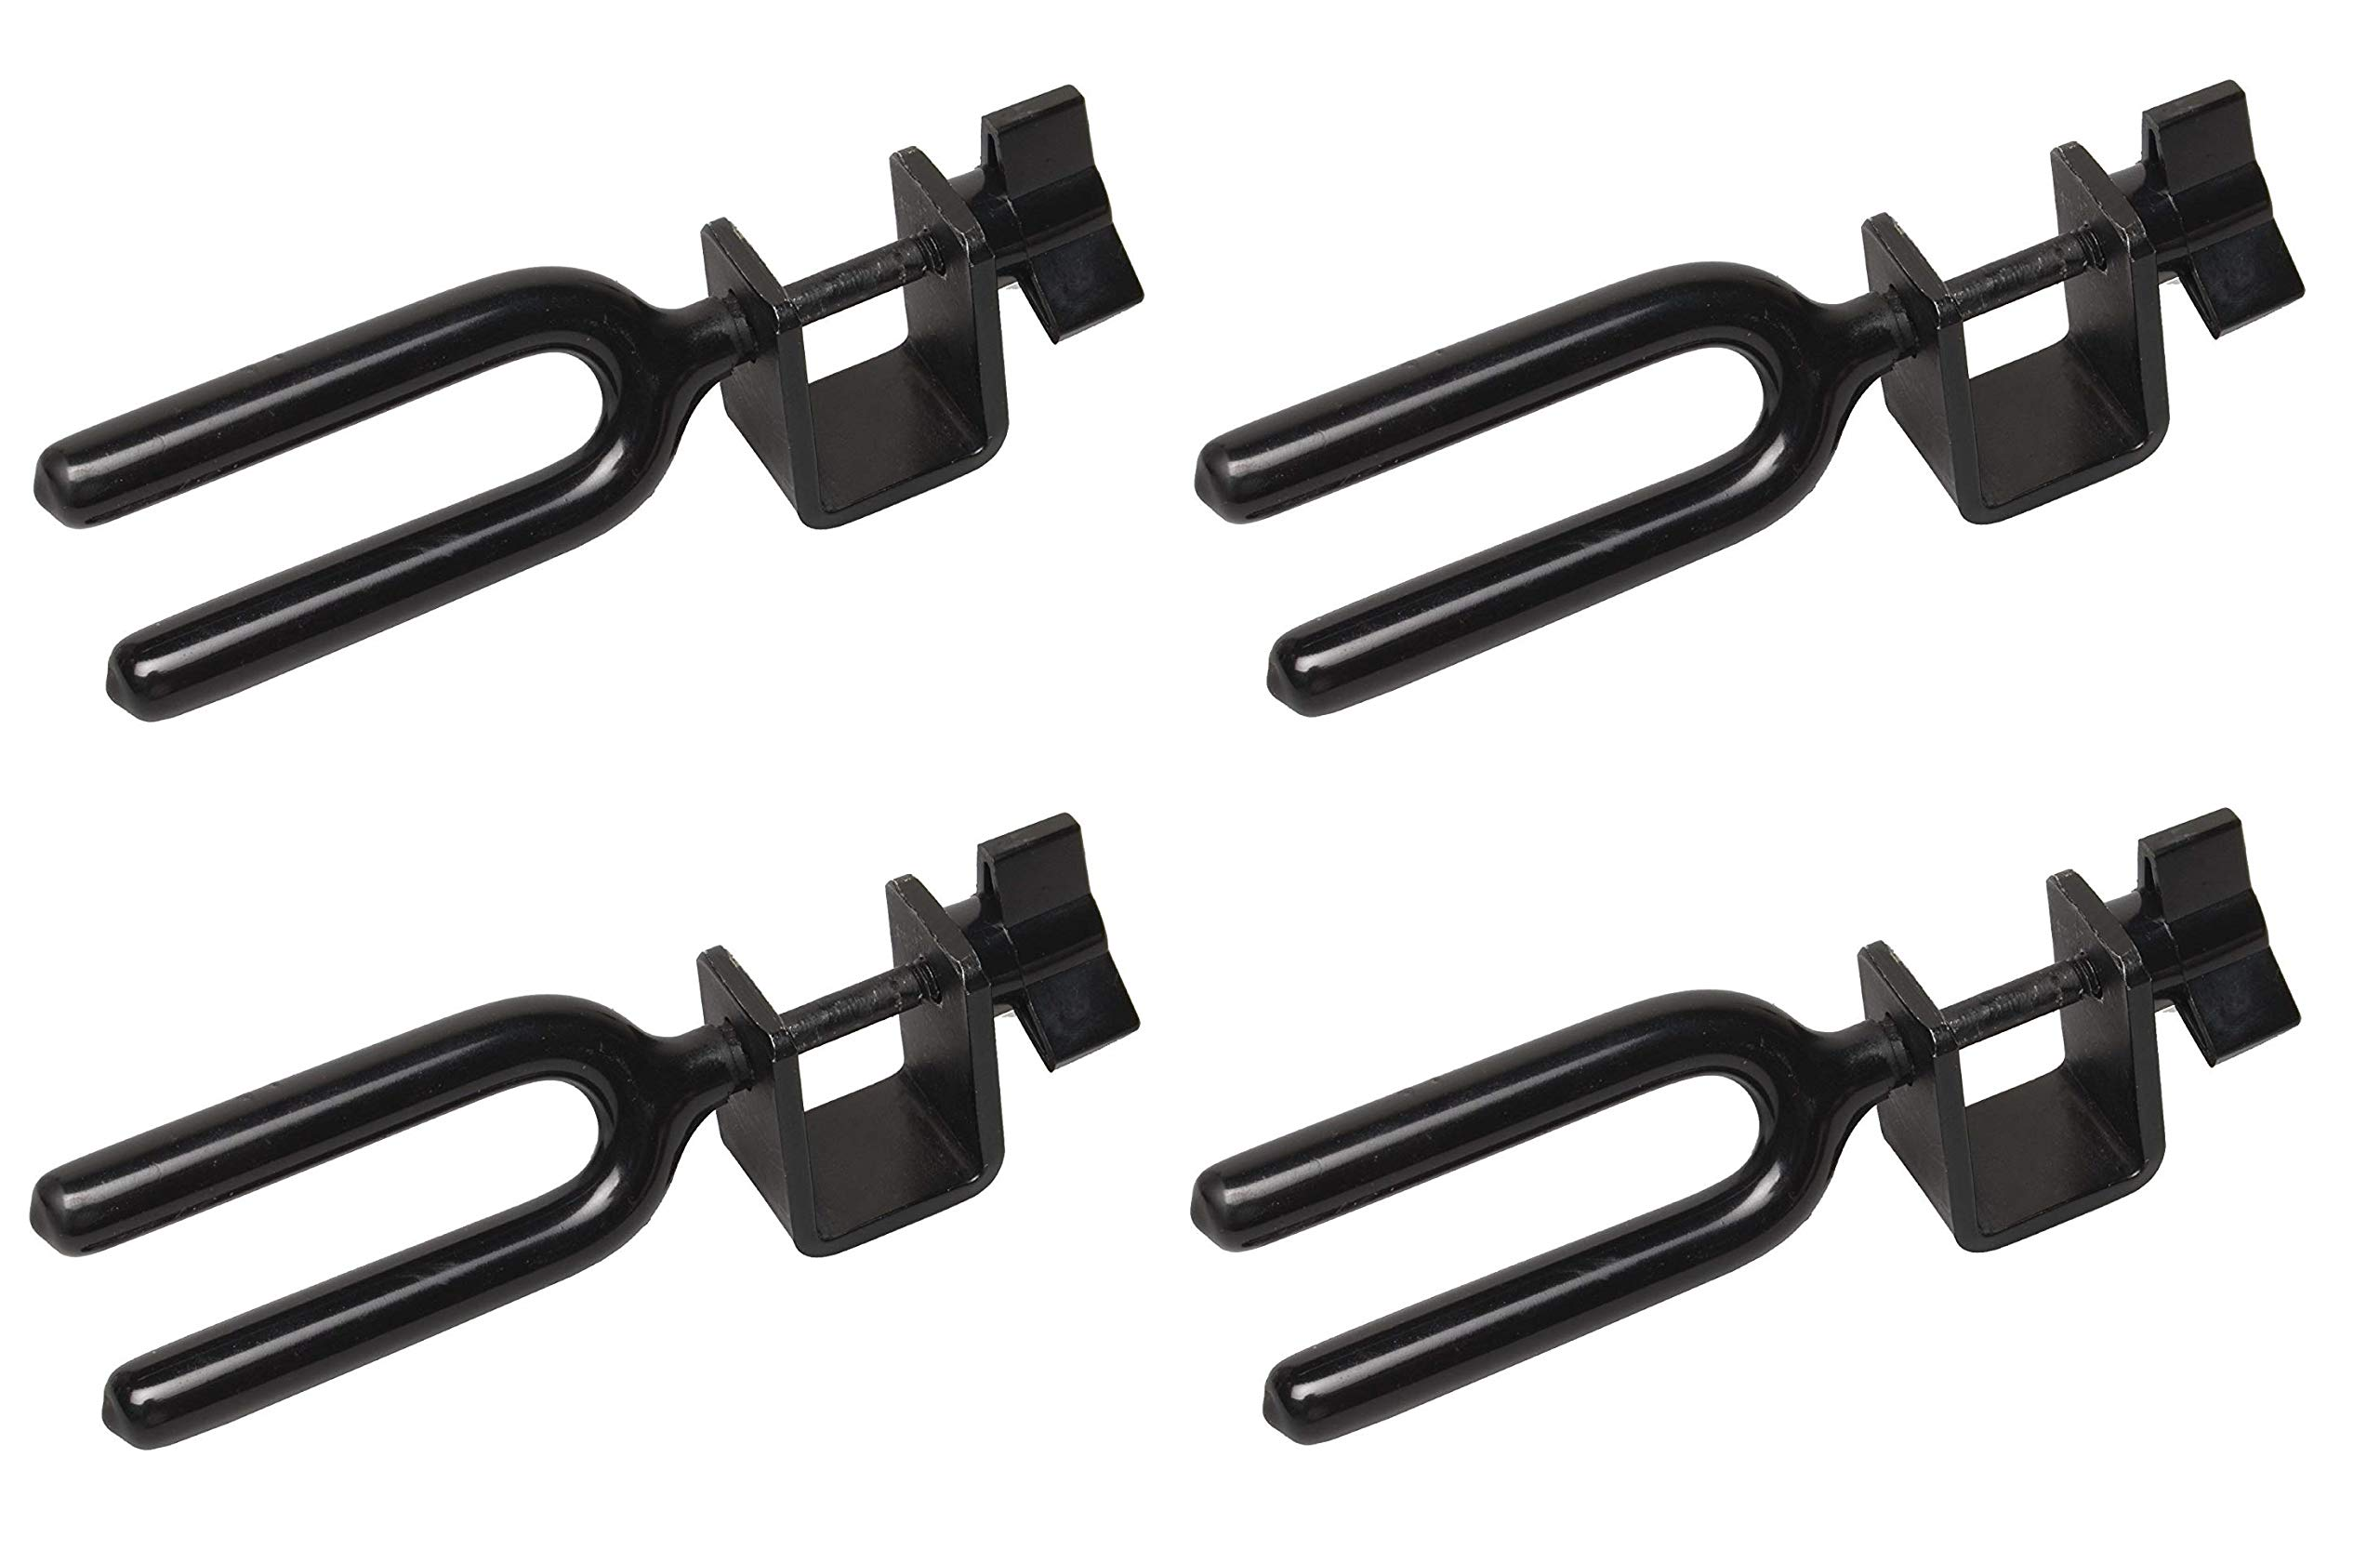 Summit Treestands Universal Bow Holder (Pack of 4)